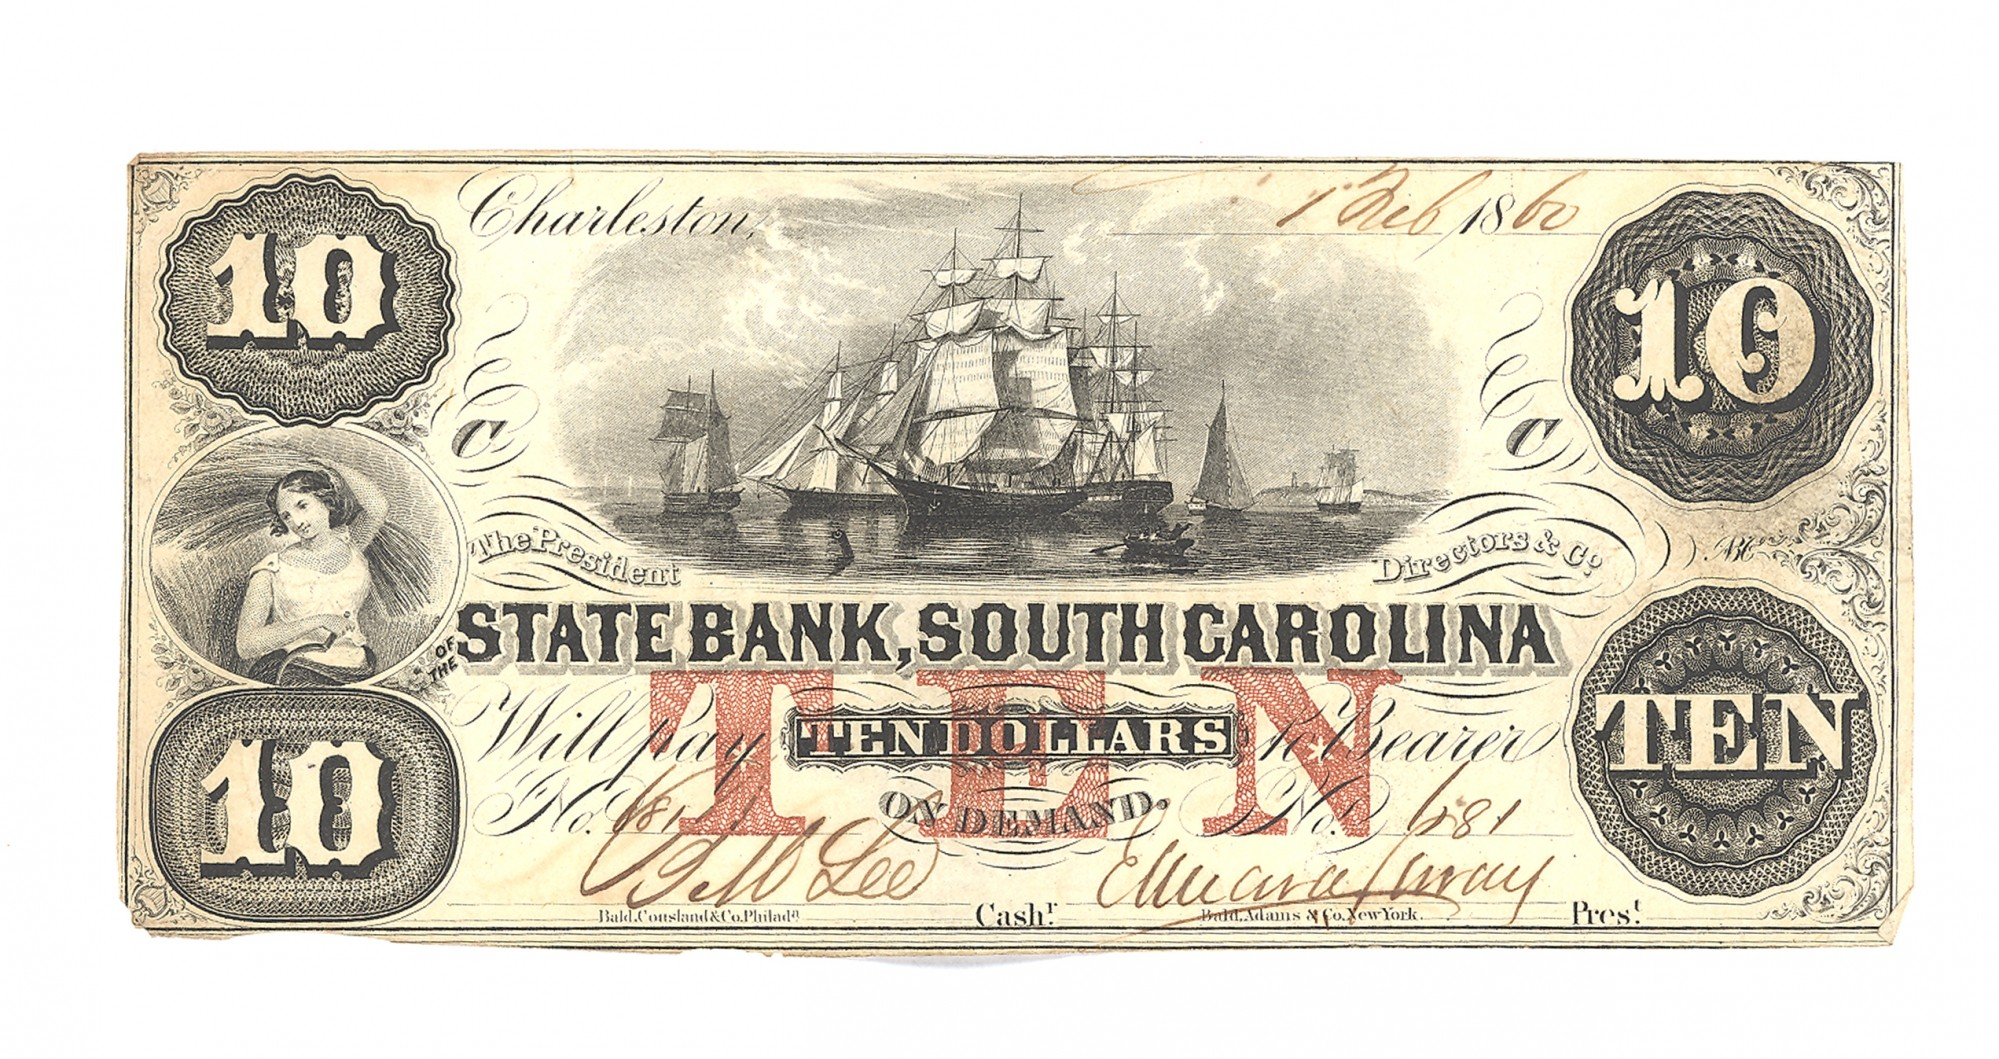 STATE BANK OF SOUTH CAROLINA, SOUTH CAROLINA $10 NOTE